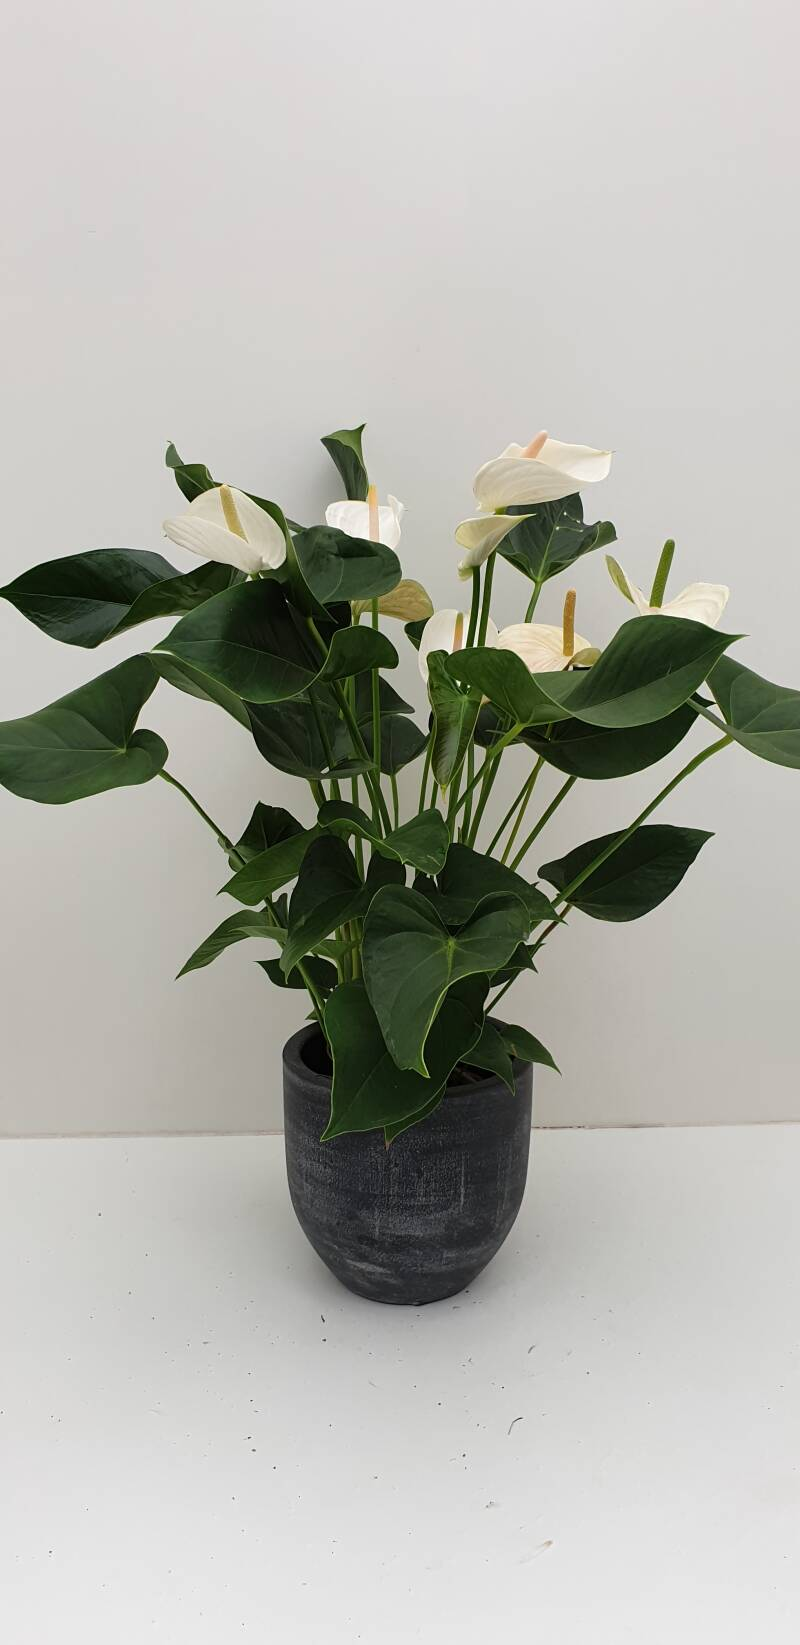 Anthurium (wit) in pot